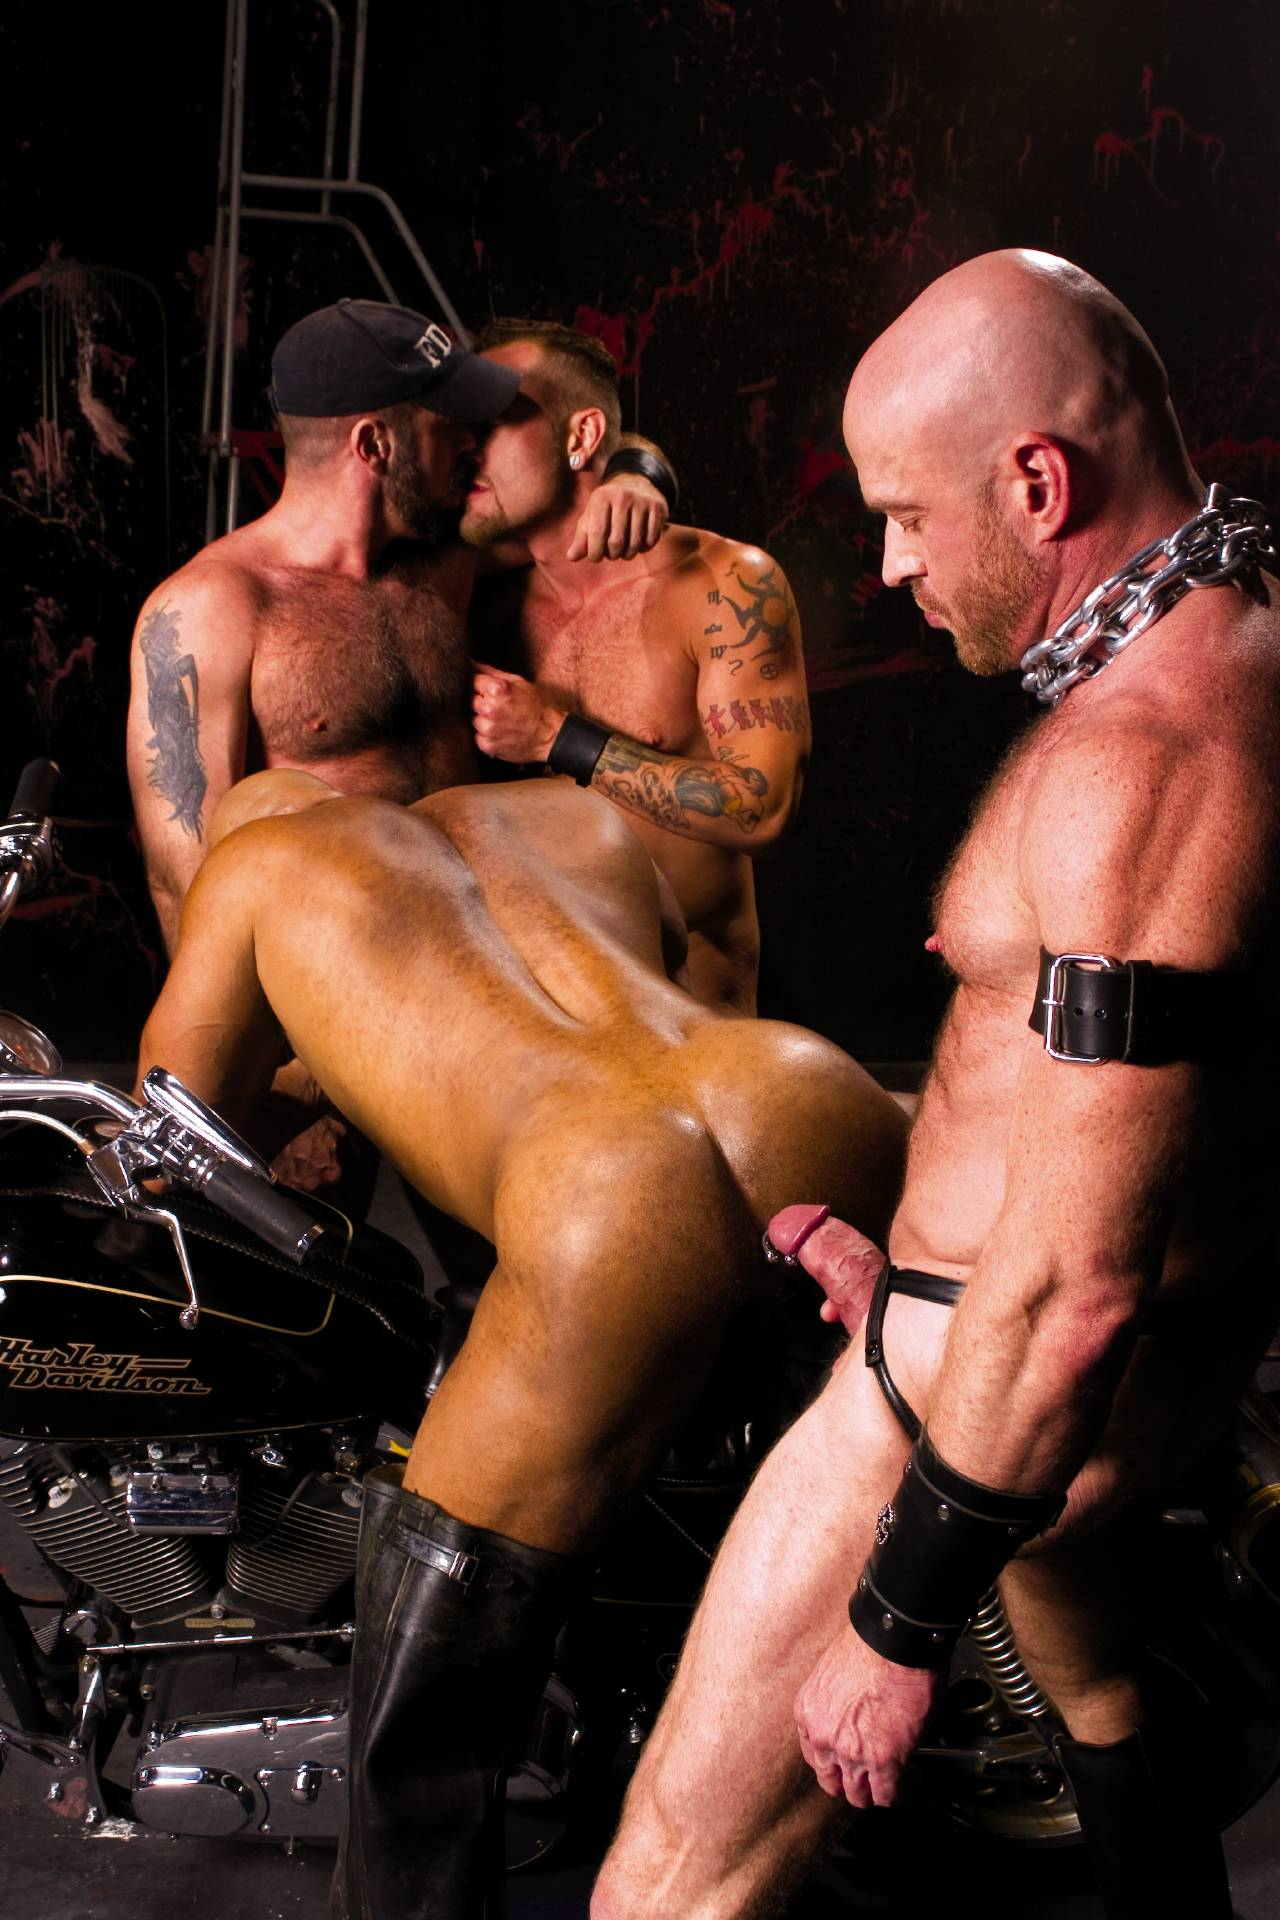 Ken Braun Erik Hunter Nick Piston Danny Mann gay hot daddy dude men porn Red Black